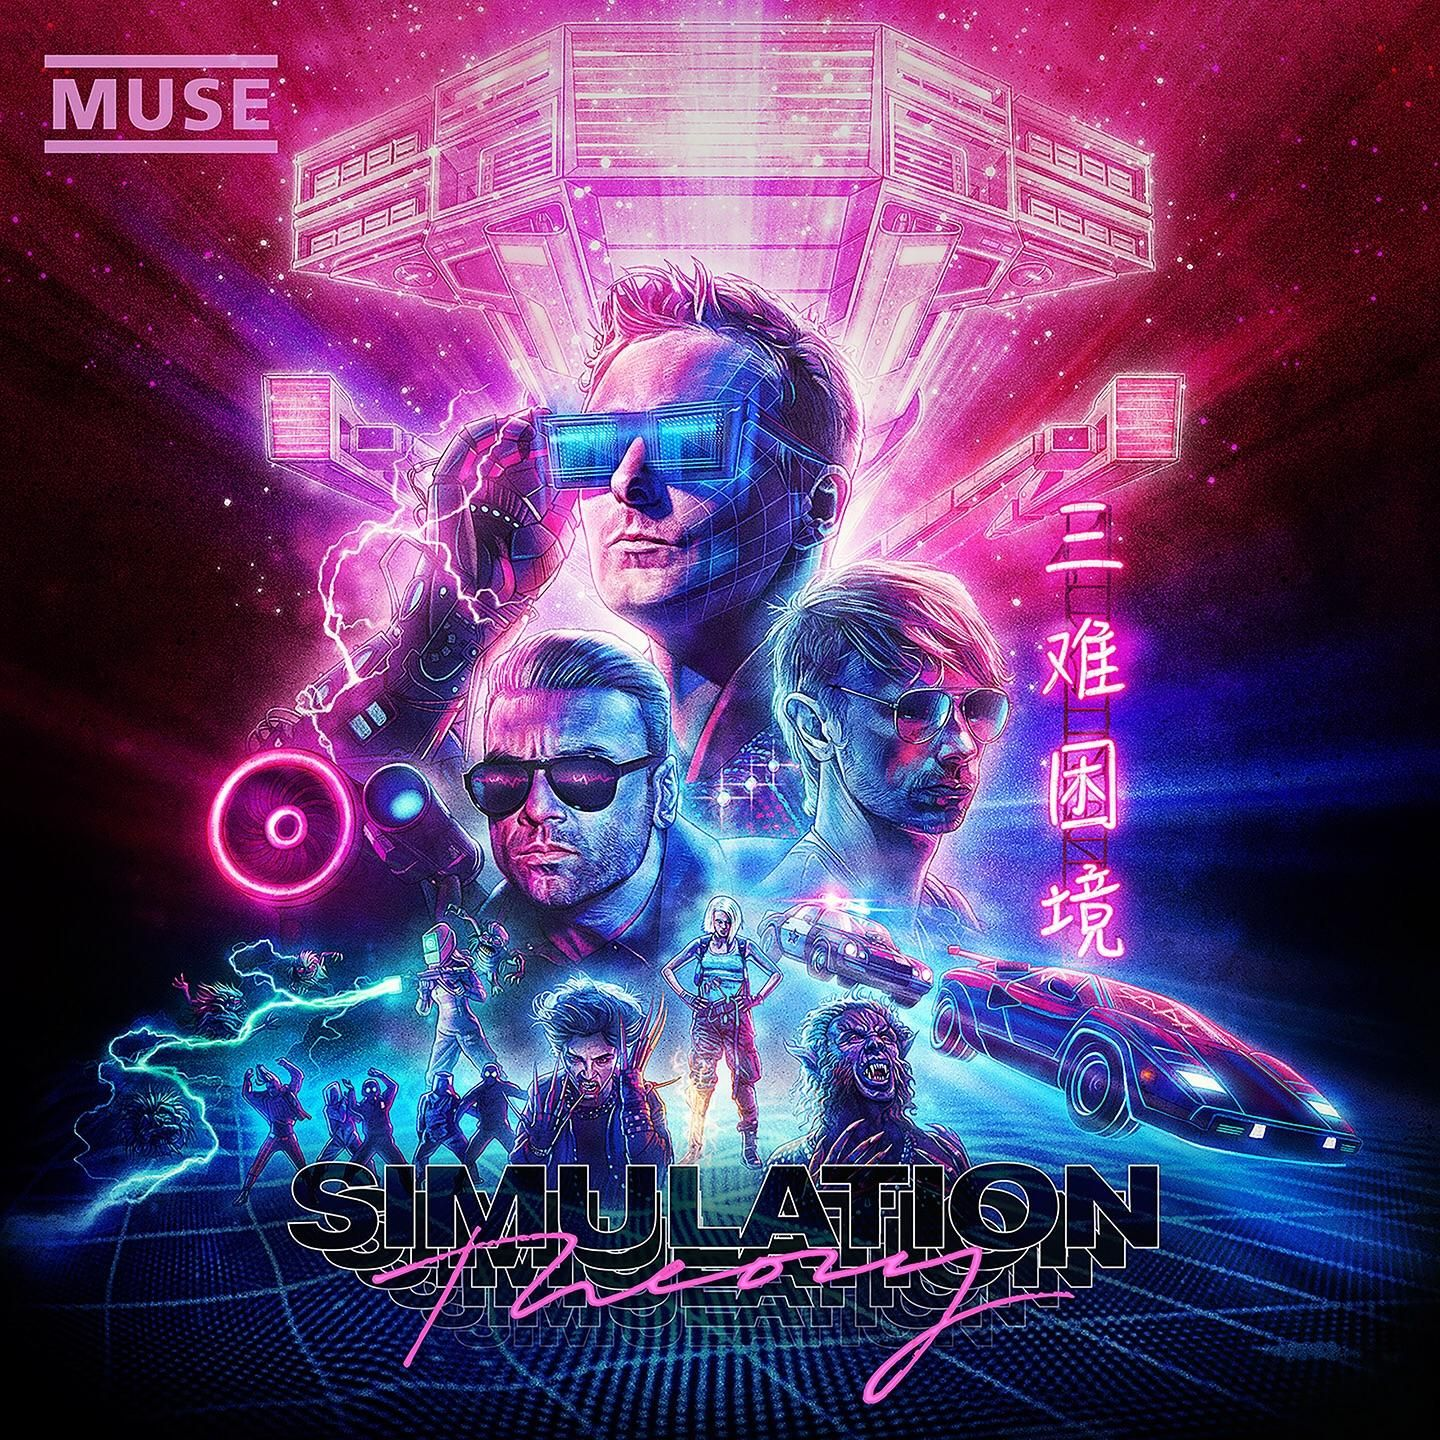 Muse Simulation Theory Album Art With Images Album Art